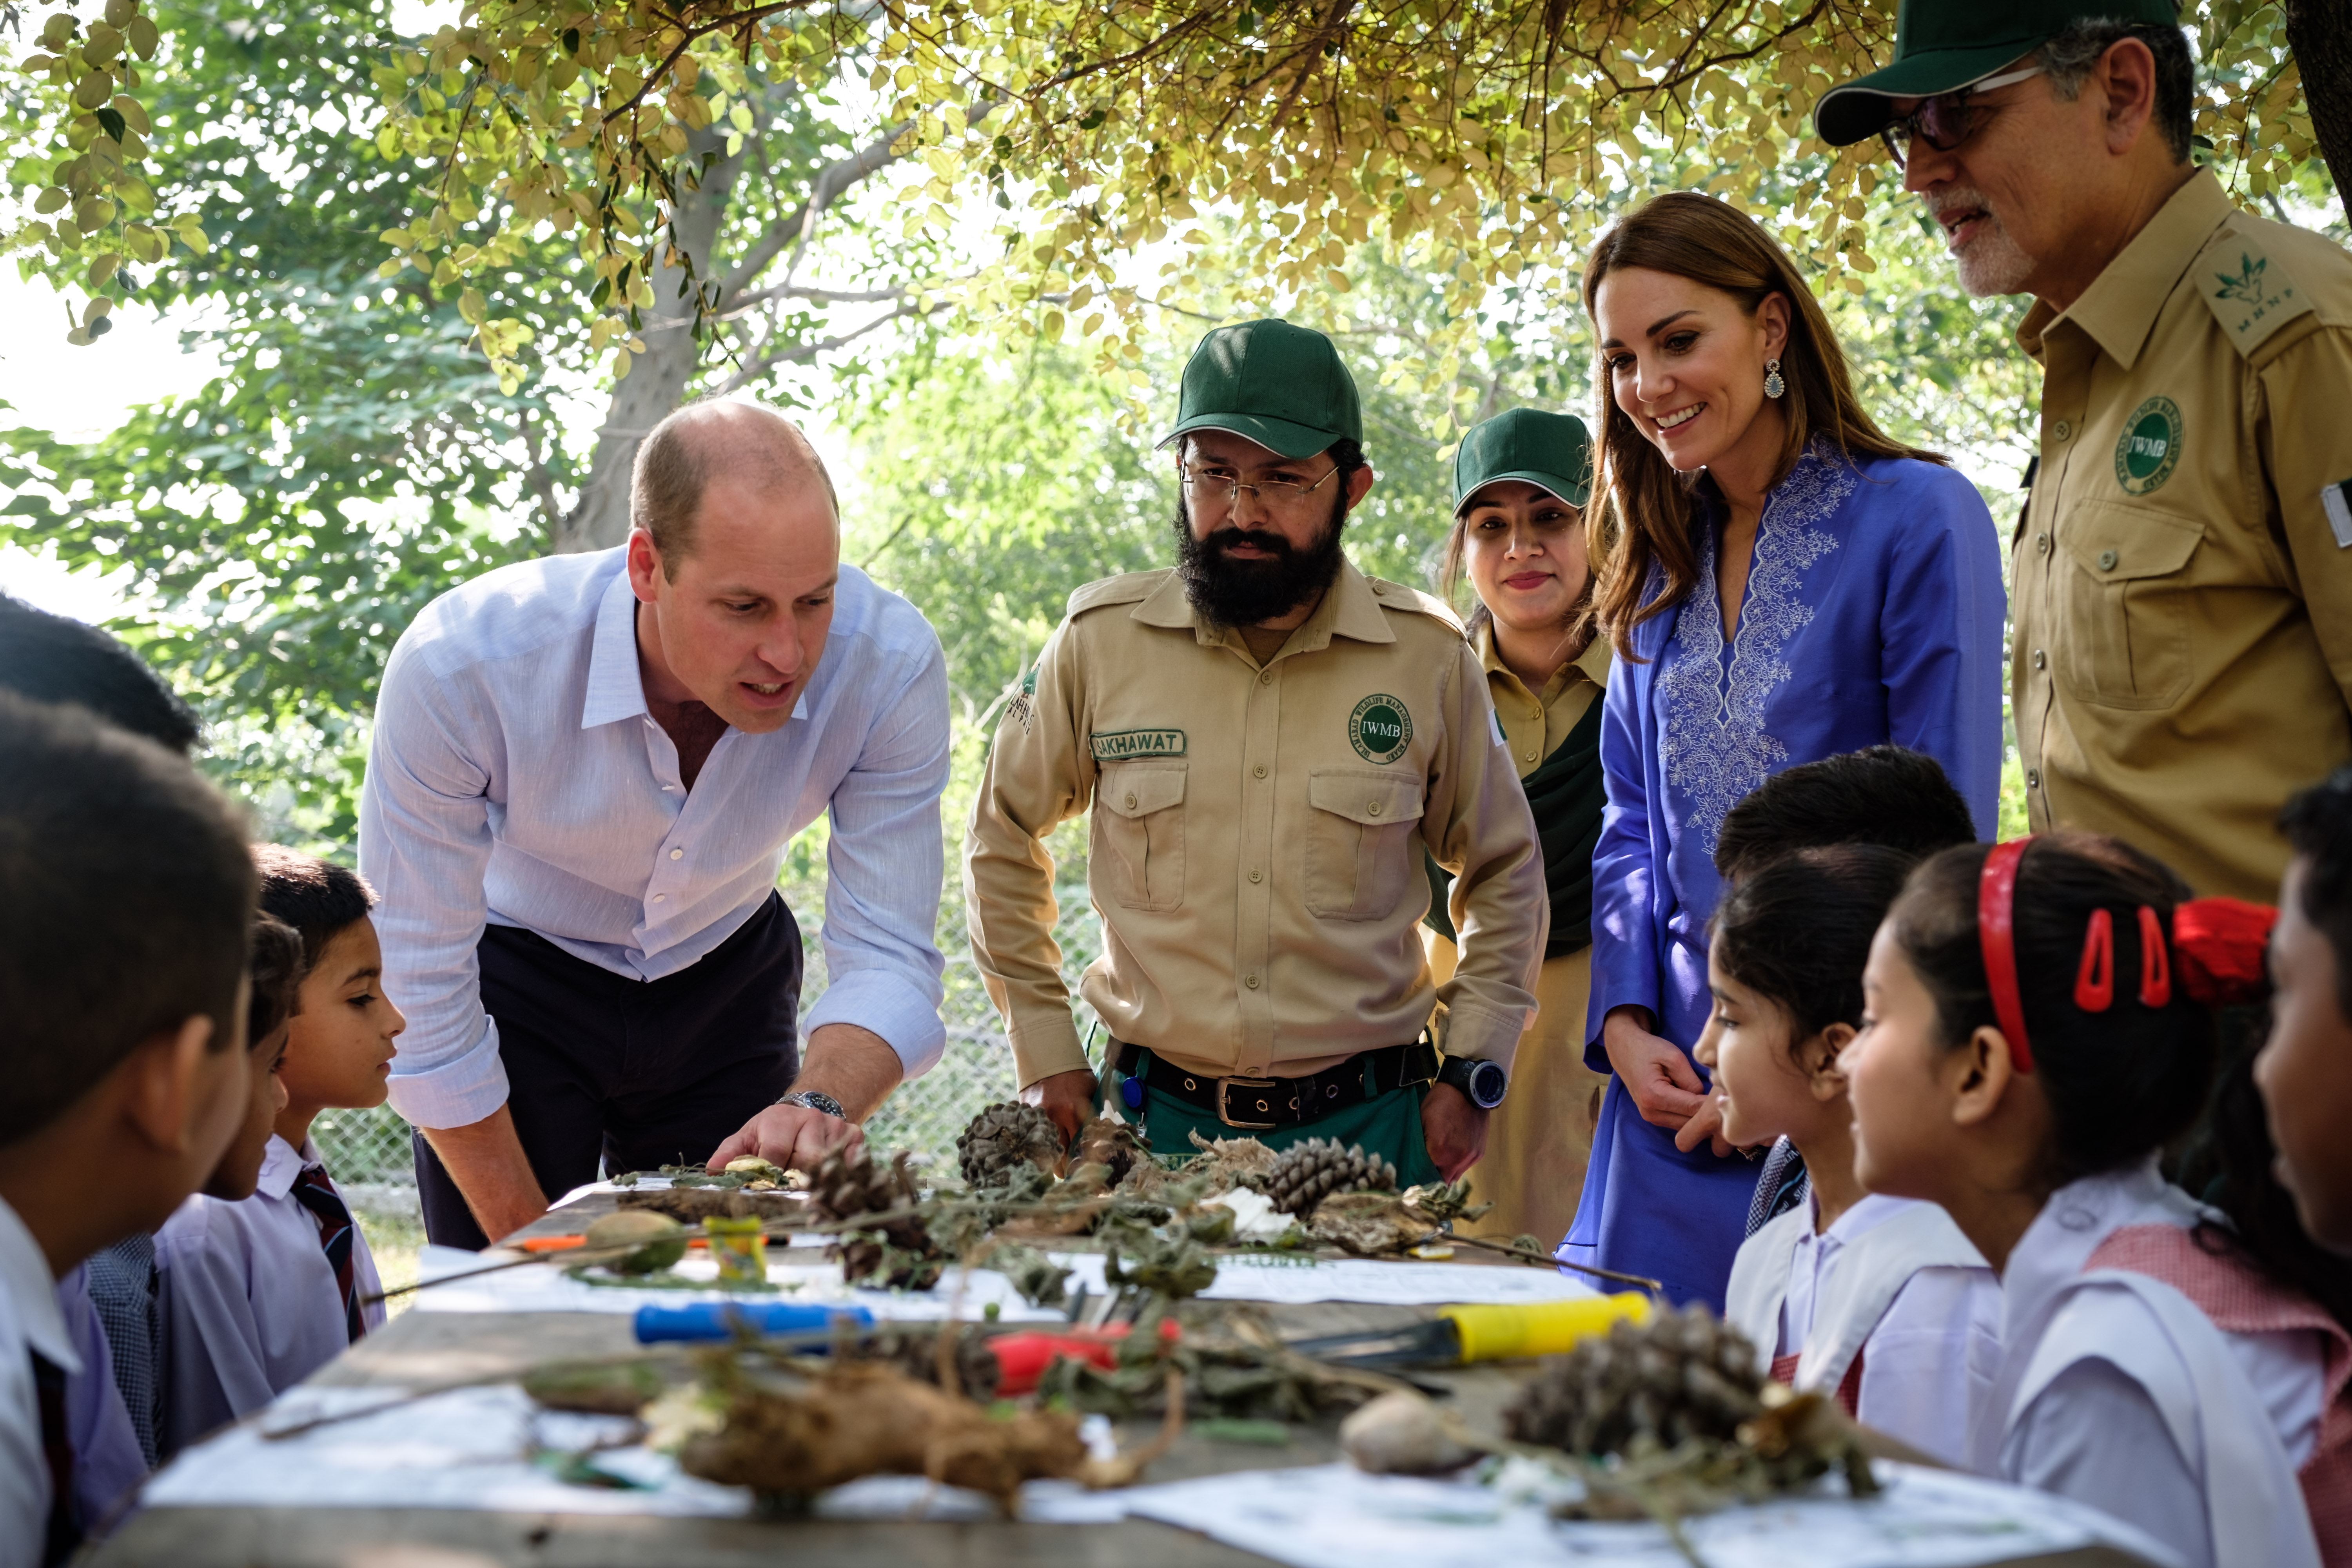 The Duke and Duchess of Cambridge in the Margalla Hills in Pakistan